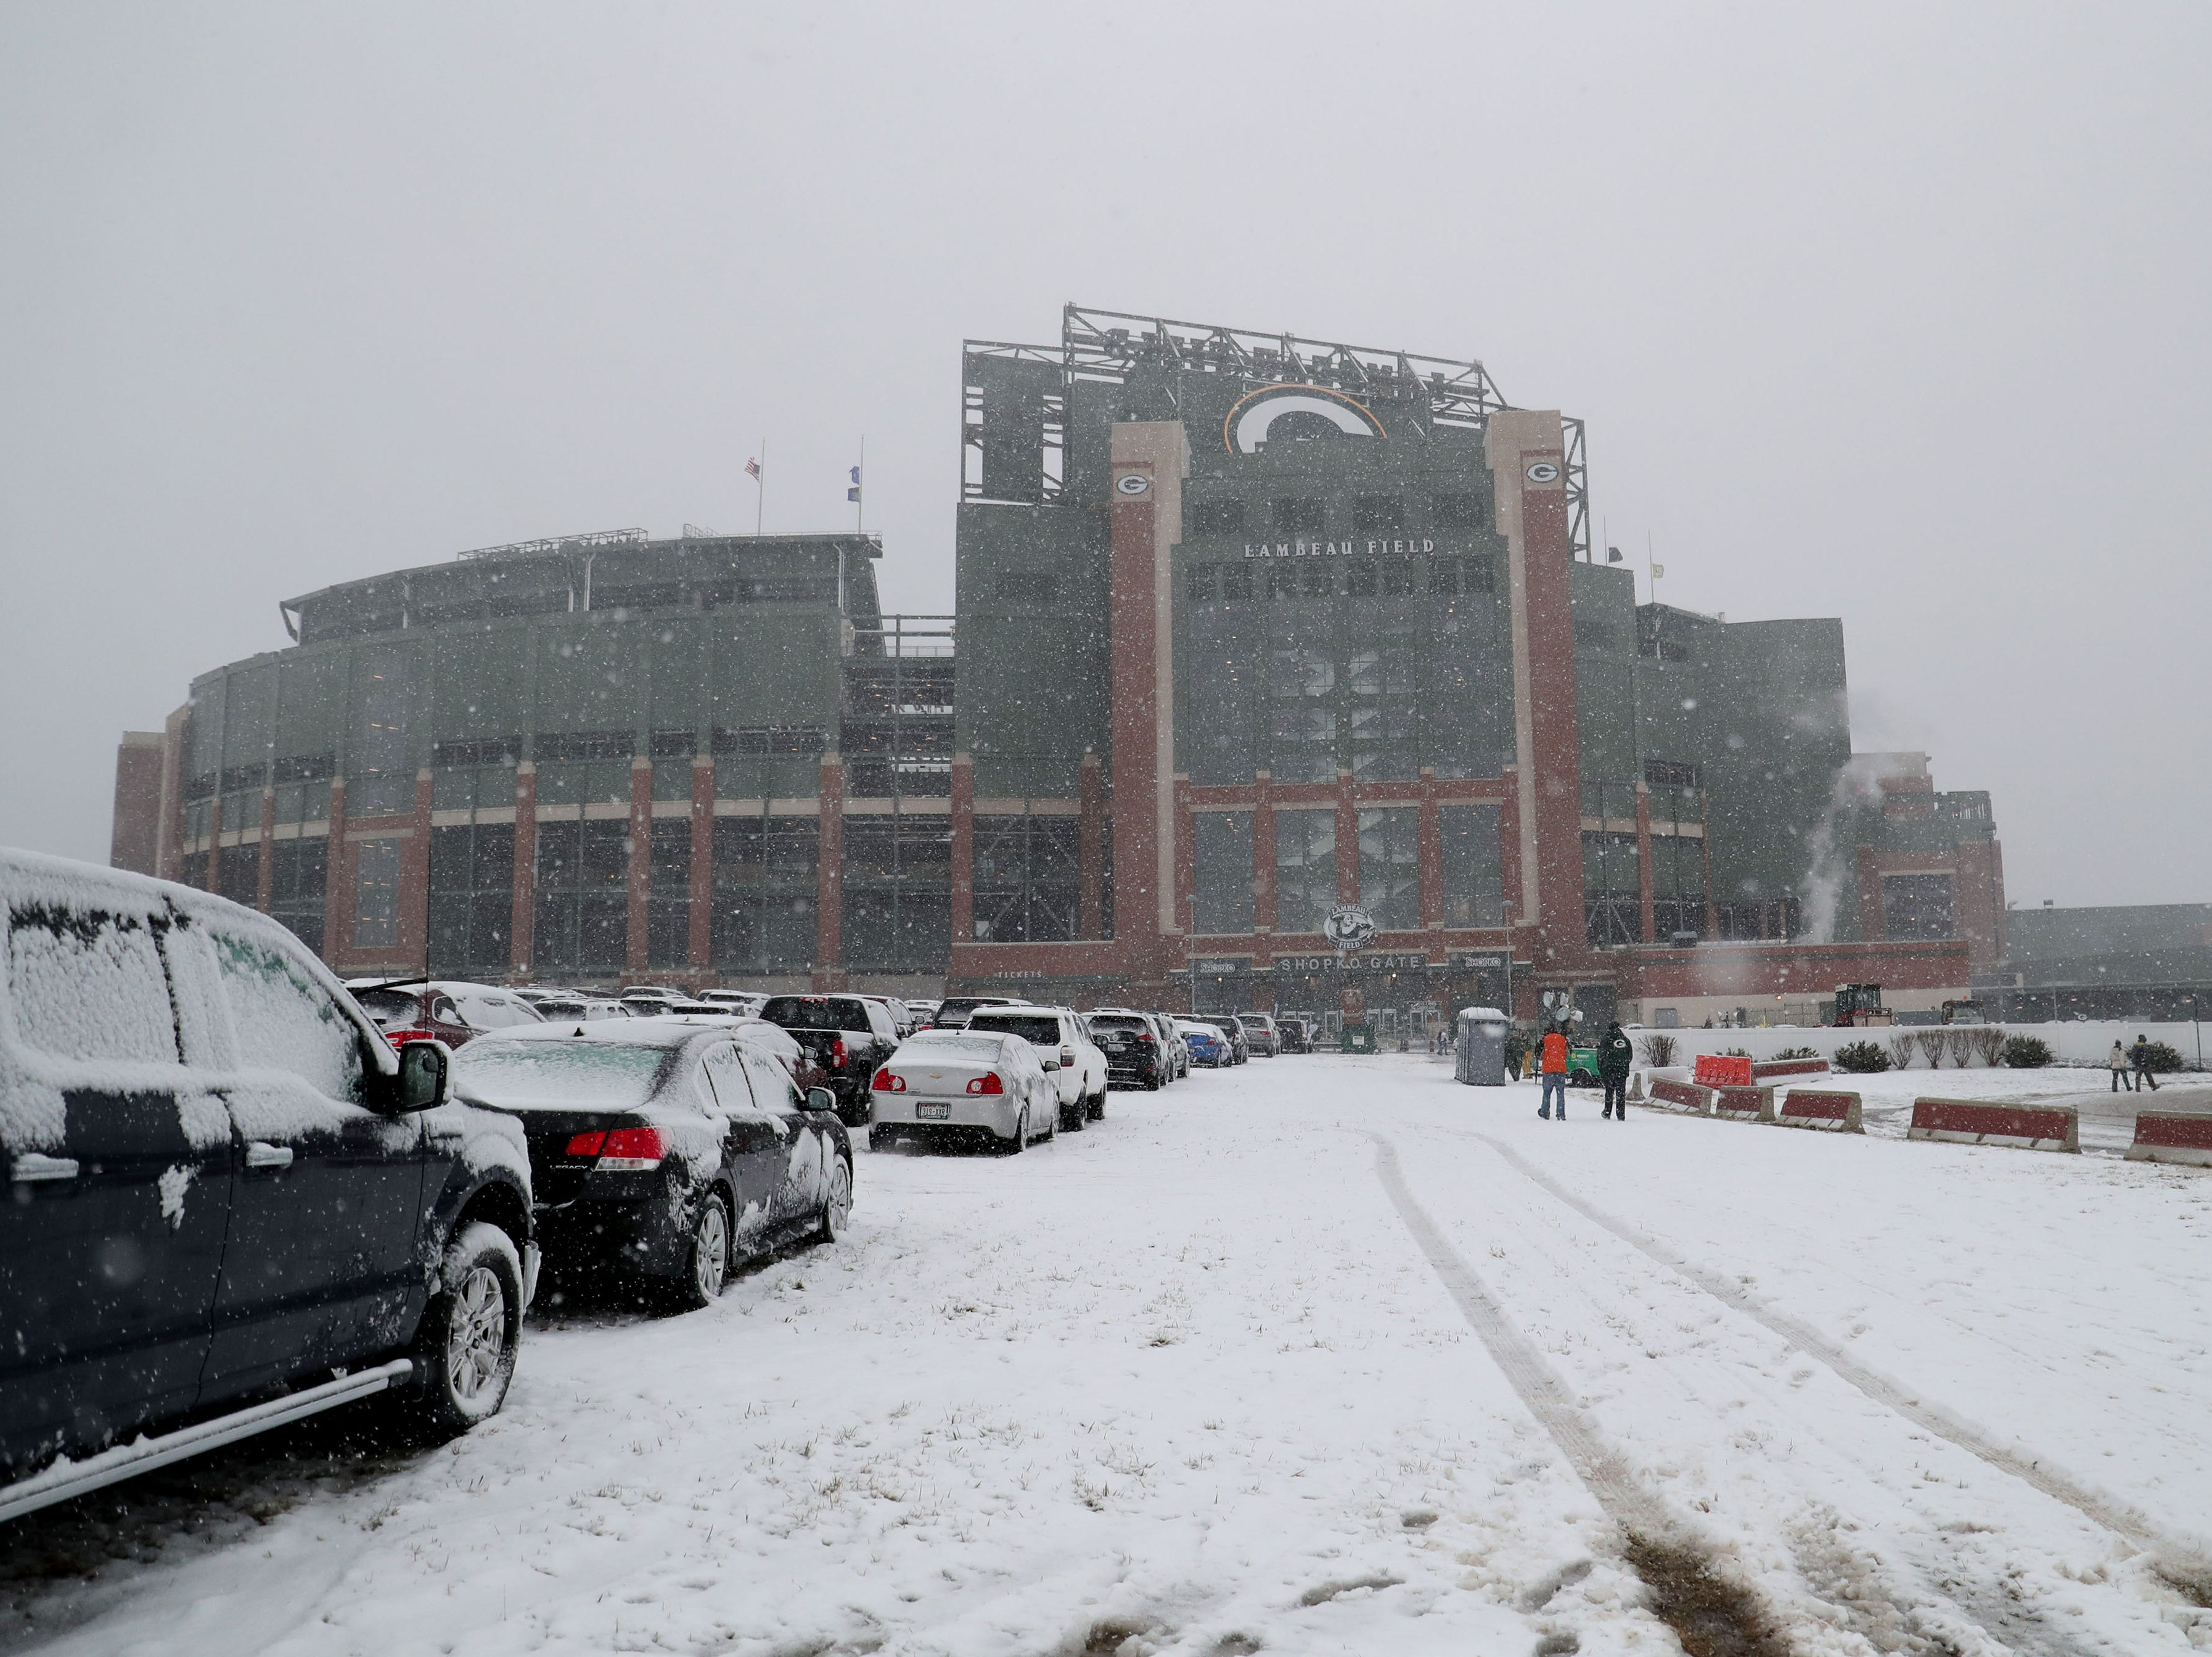 Snow falls over Lambeau Field before the Green Bay Packers game against the Arizona Cardinals at Lambeau Field in Green Bay, Wis. on Sunday, December 2, 2018.